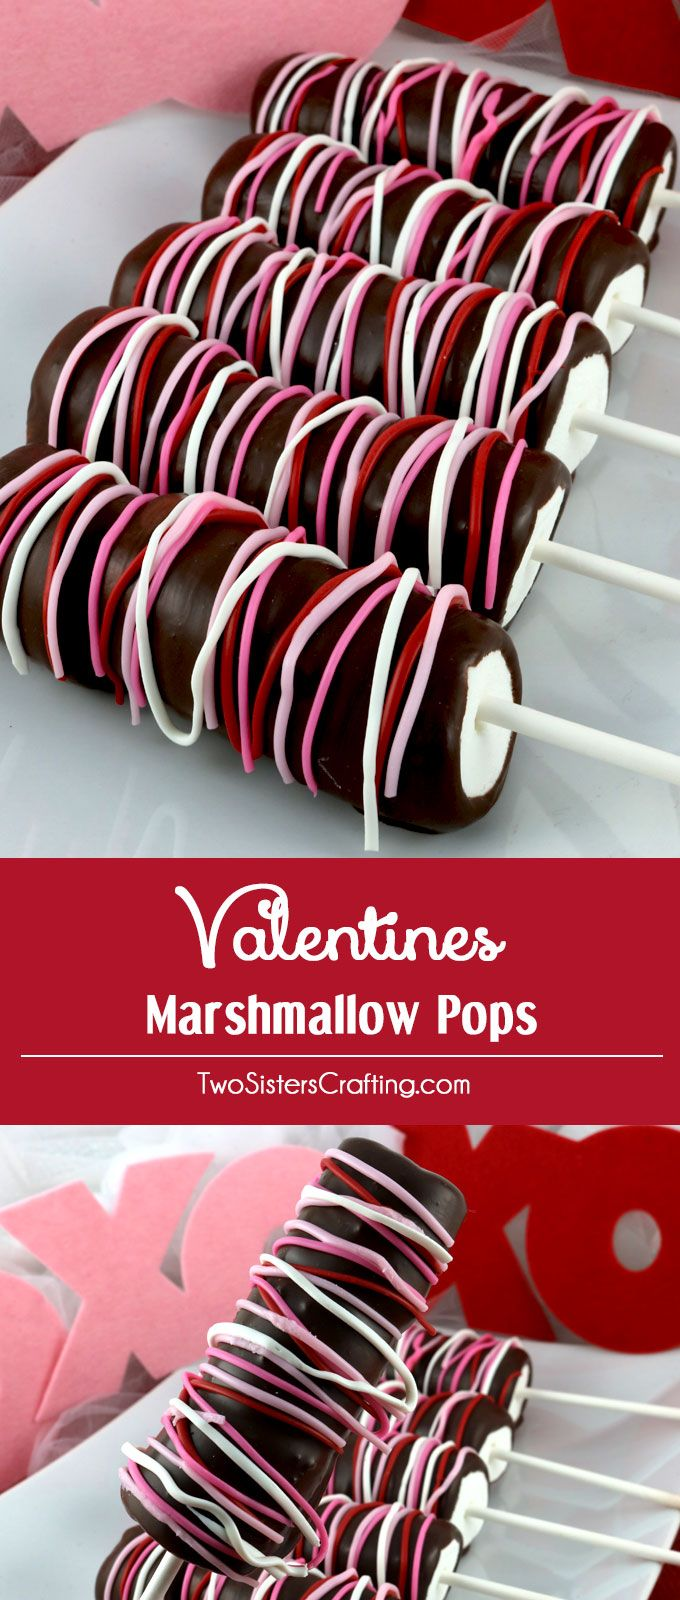 Valentines Marshmallow Pops - a colorful and delicious Valentine's Day dessert for your family. So easy to make and you won't believe how yummy these Chocolate covered Marshmallow Wands are. They would be a great Valentines Treat for your loved ones. Pin this delicious Valentine's Candy for later and follow us for more great Valentine's Day Food Ideas. #chocolatepops